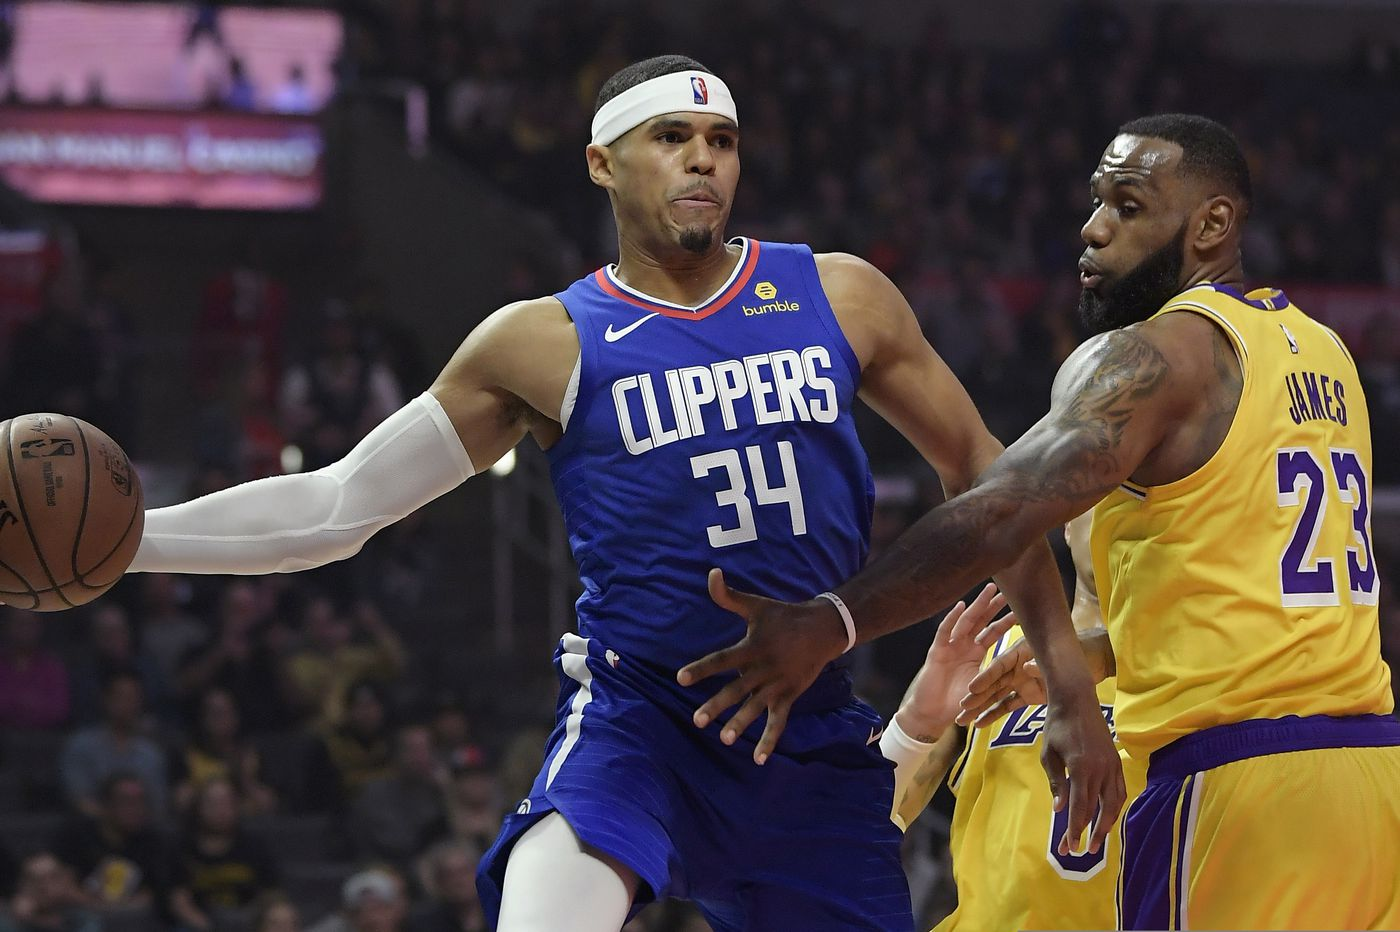 Sixers trade three players to Clippers for Tobias Harris, Boban Marjanovic, and Mike Scott in blockbuster deal